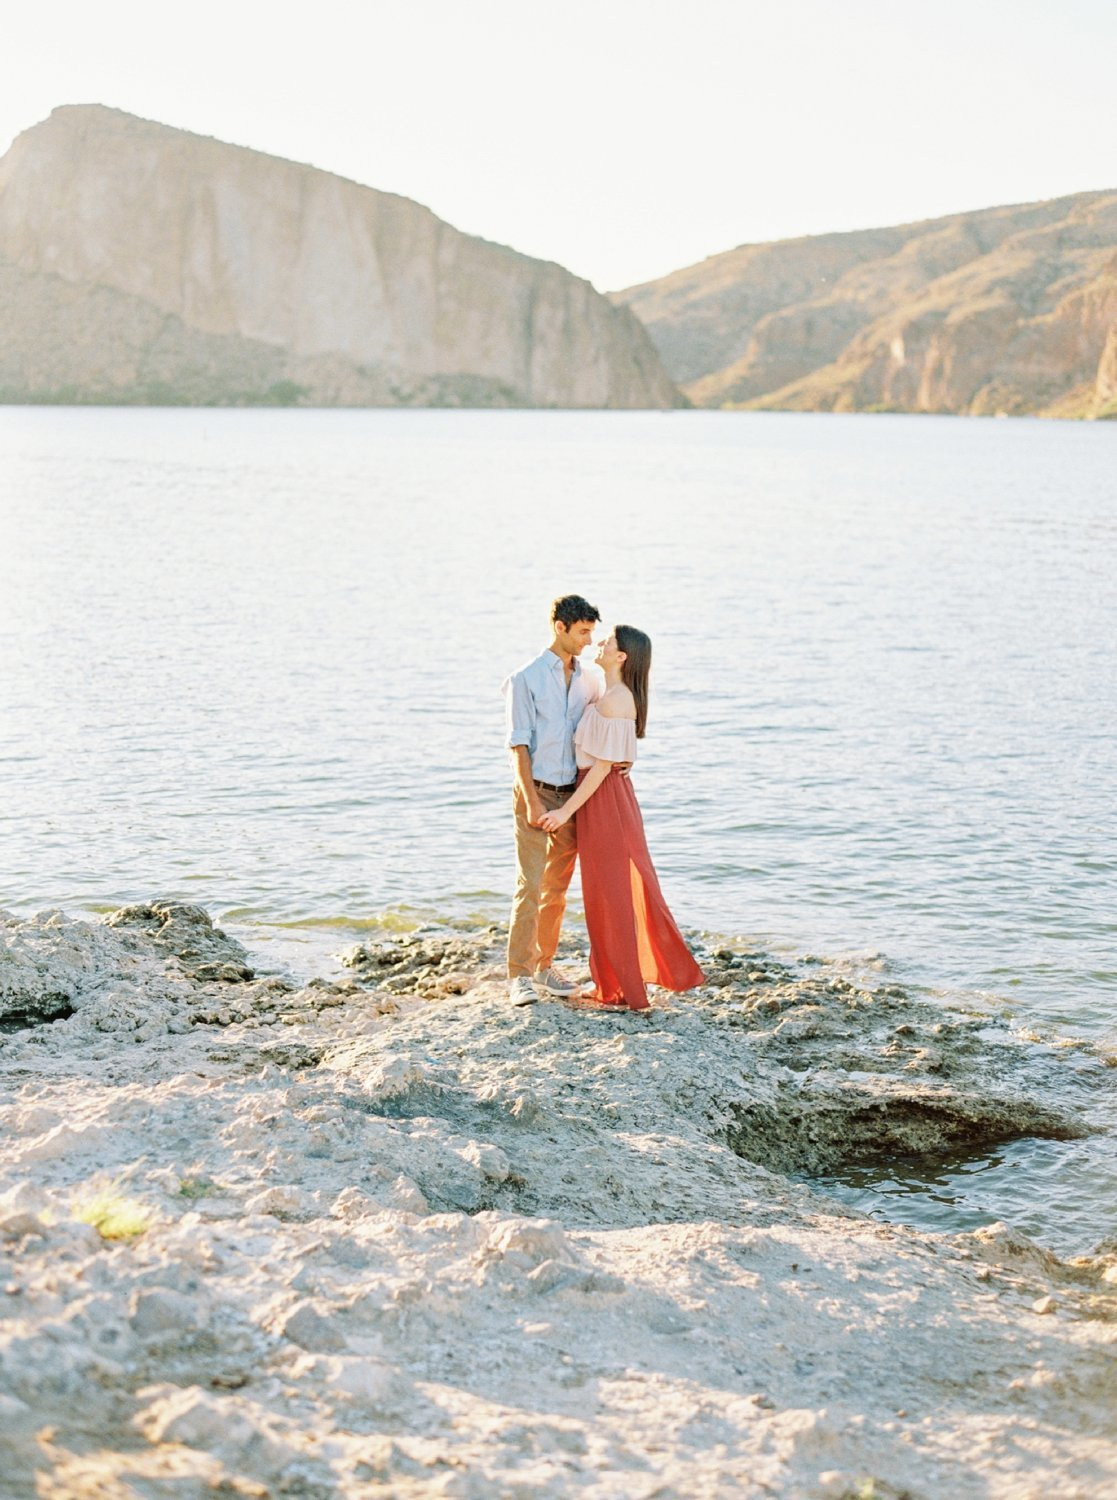 lake-arizona-engagement-session-wedding-photographer-Rachael-Koscica_0570